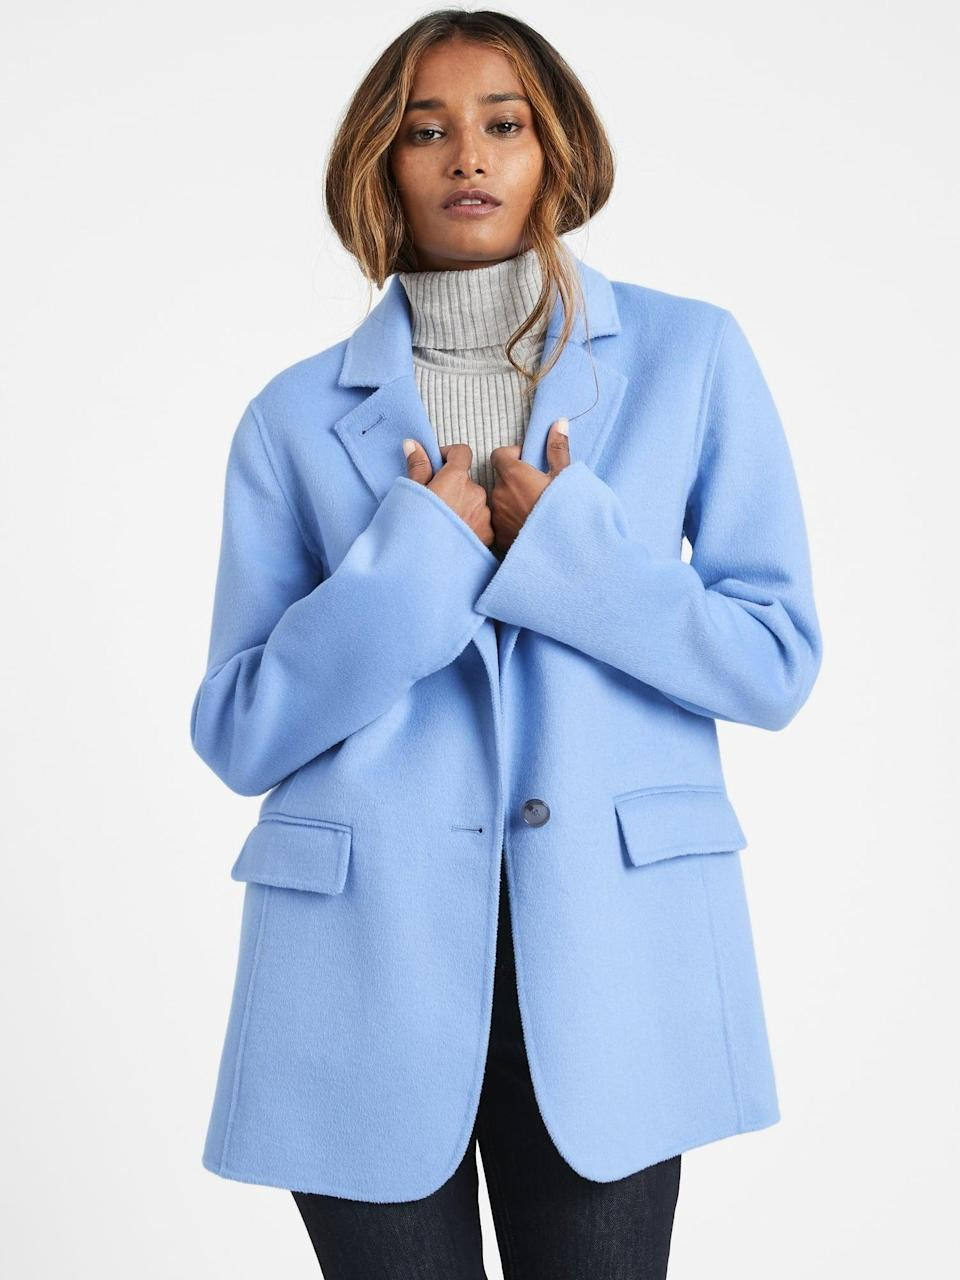 <p>The icy blue shade of this <span>Unlined Double-Faced Jacket</span> ($206, originally $229) is so nice for winter.</p>